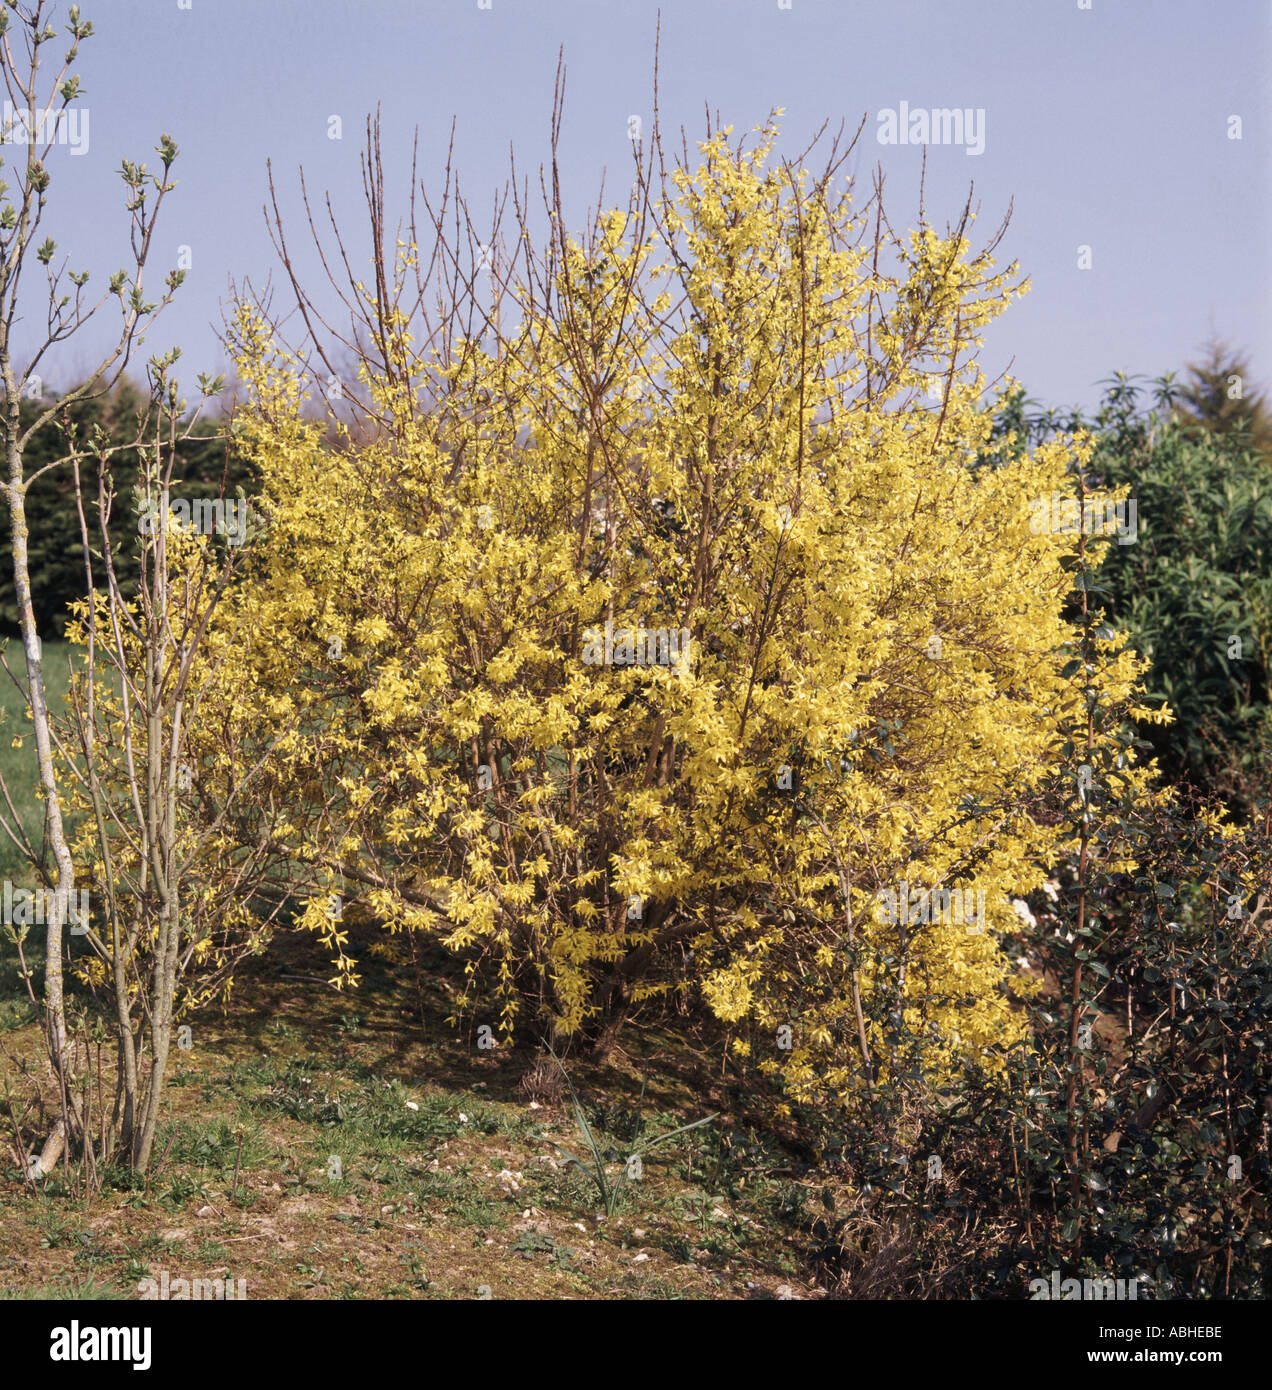 Yellow early flowering Forsythia shrub in garden setting Stock Photo